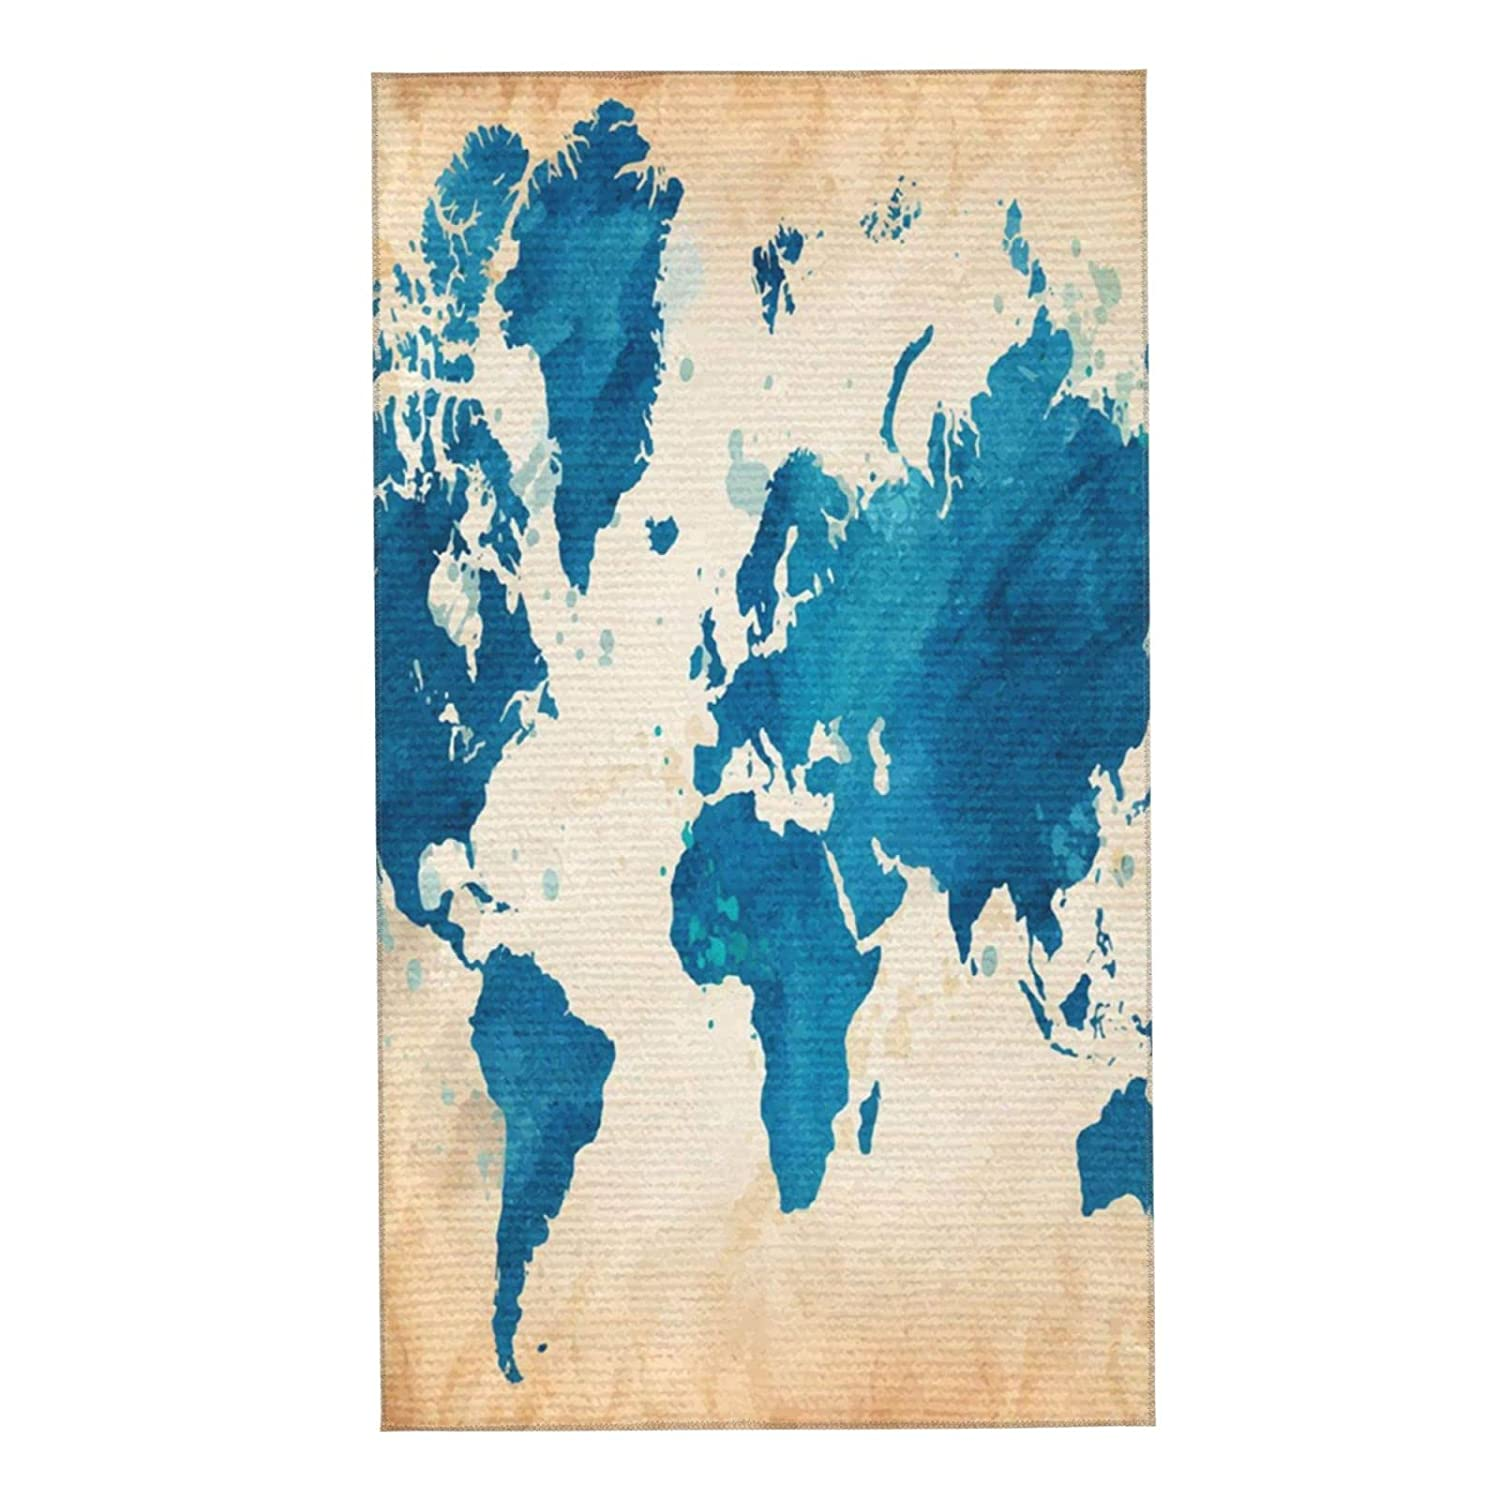 Vintage Clearance SALE! Limited time! World Map Watercolor Old Cloth Towels Complete Free Shipping Soft Microfib Face